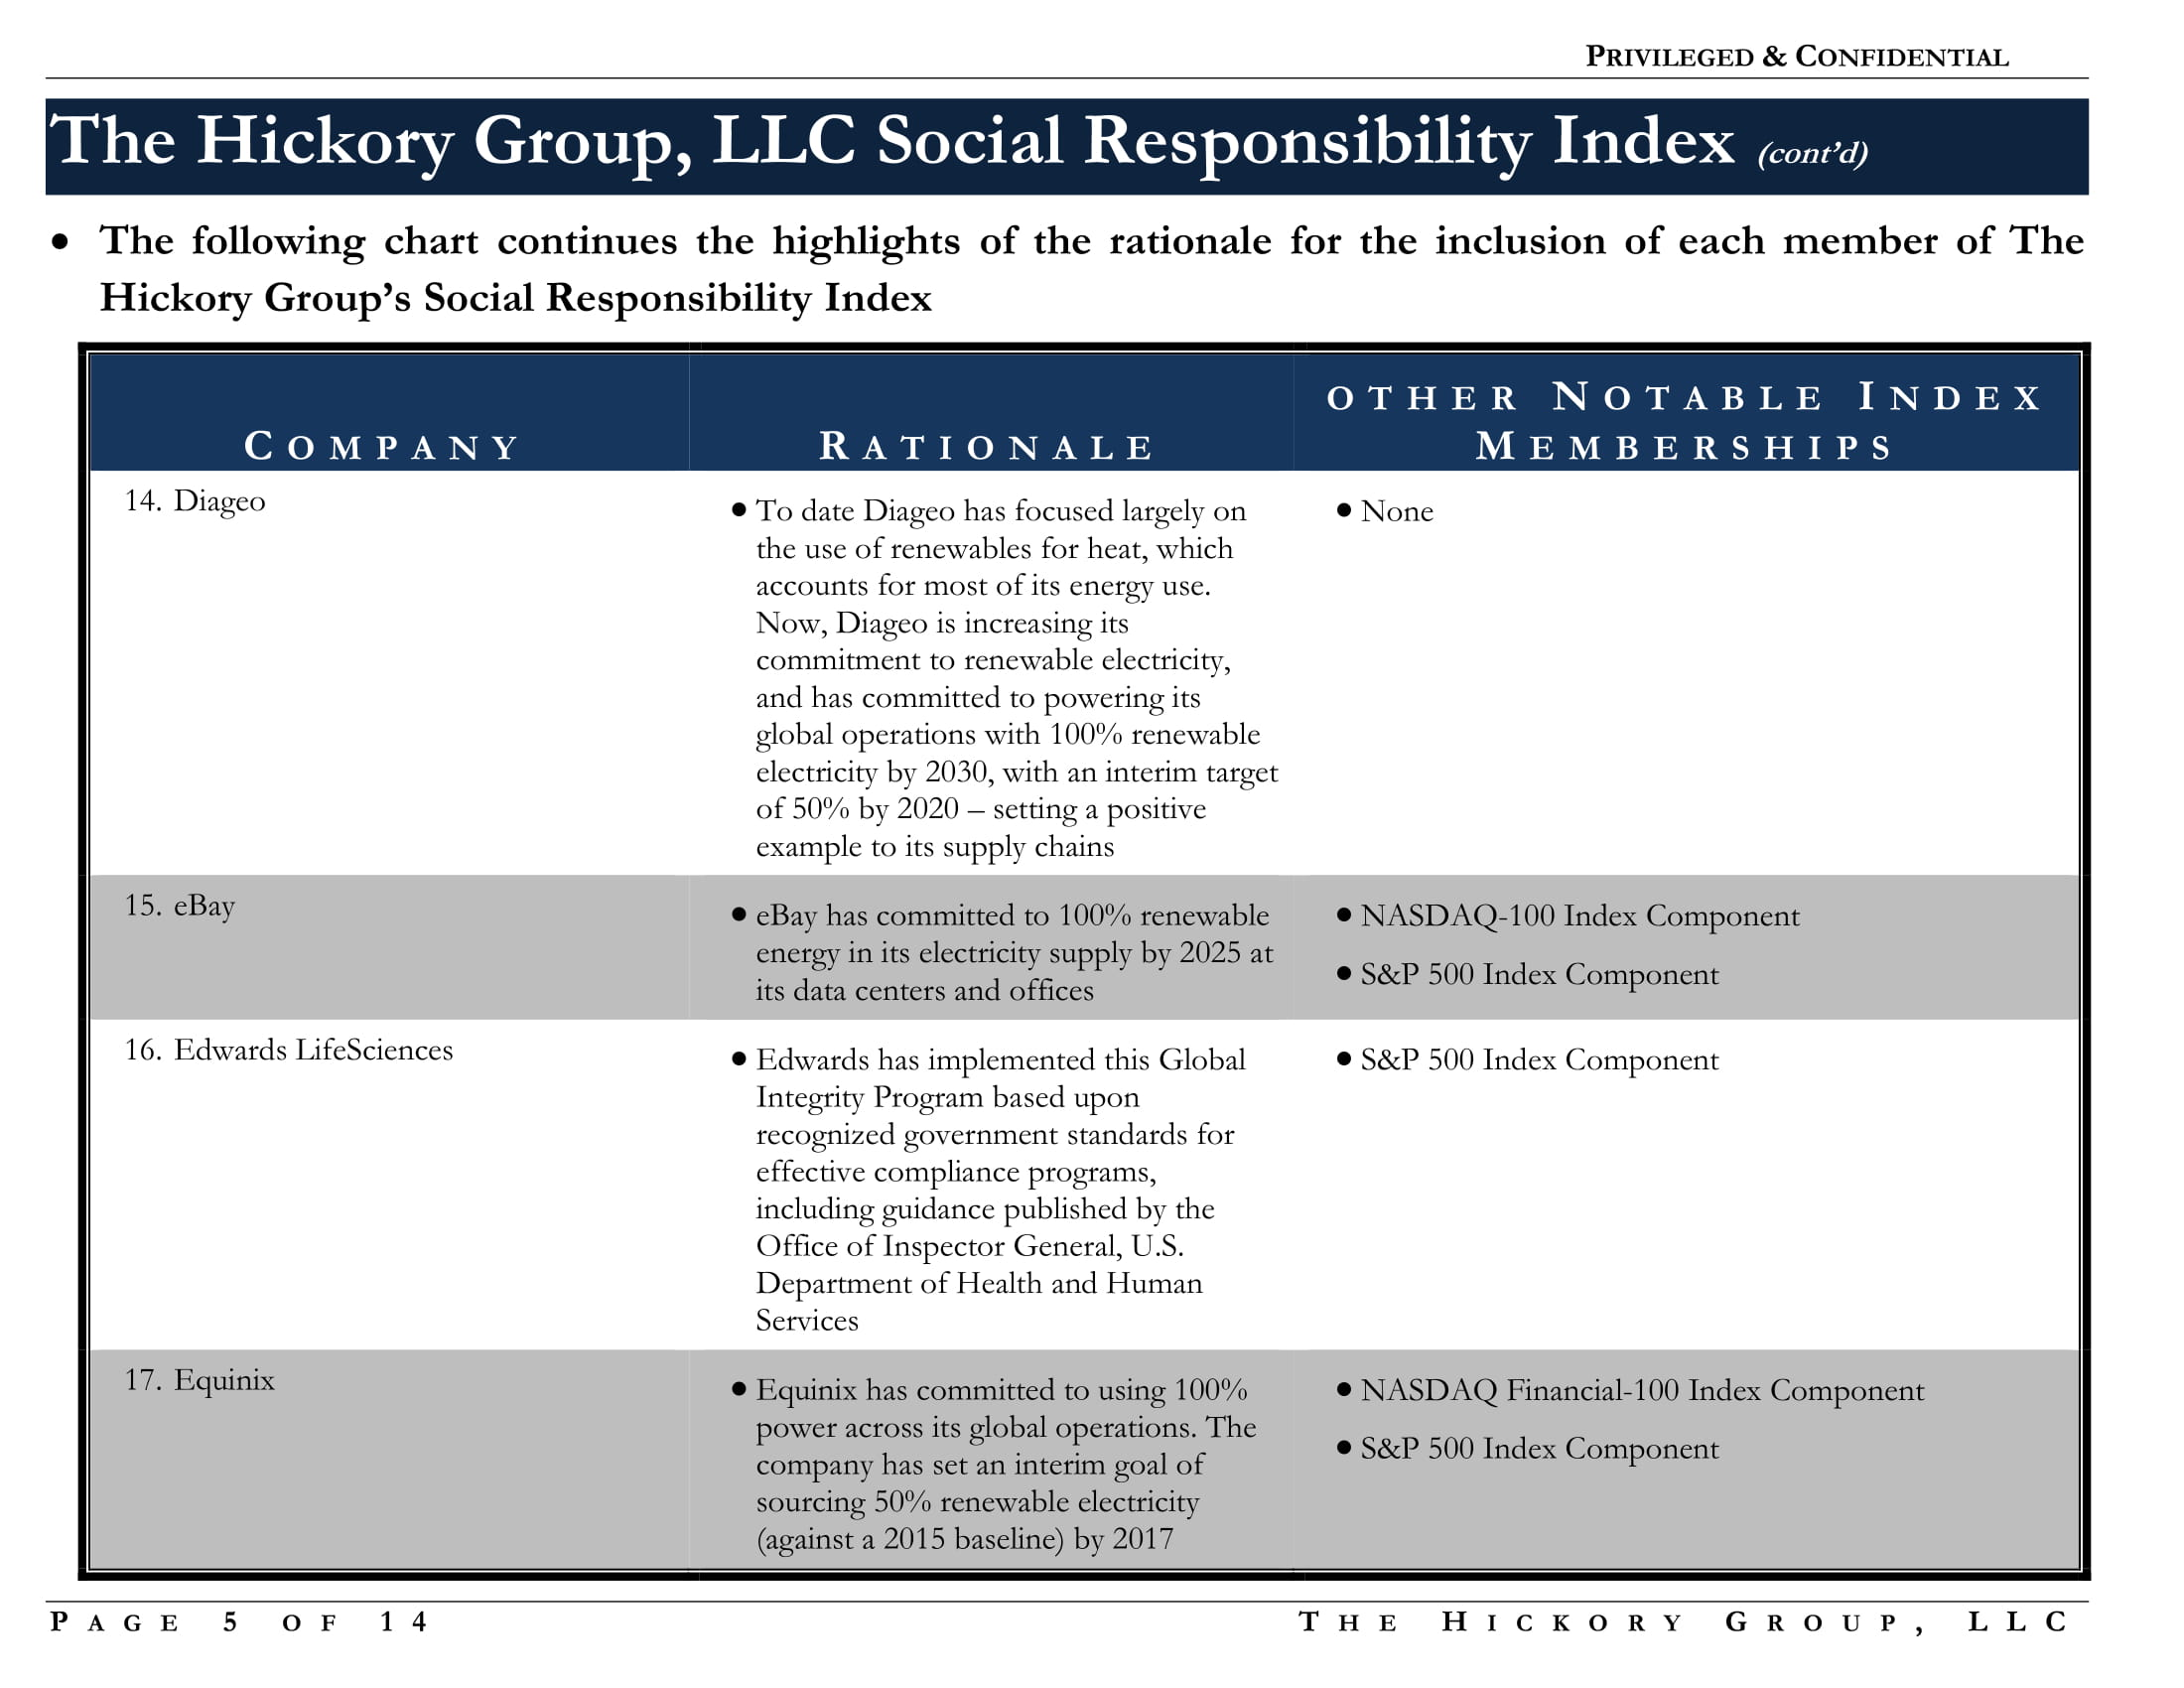 FINAL Social Responsibility Index  Notes and Rationale (7 October 2017) Privileged and Confidential-05.jpg